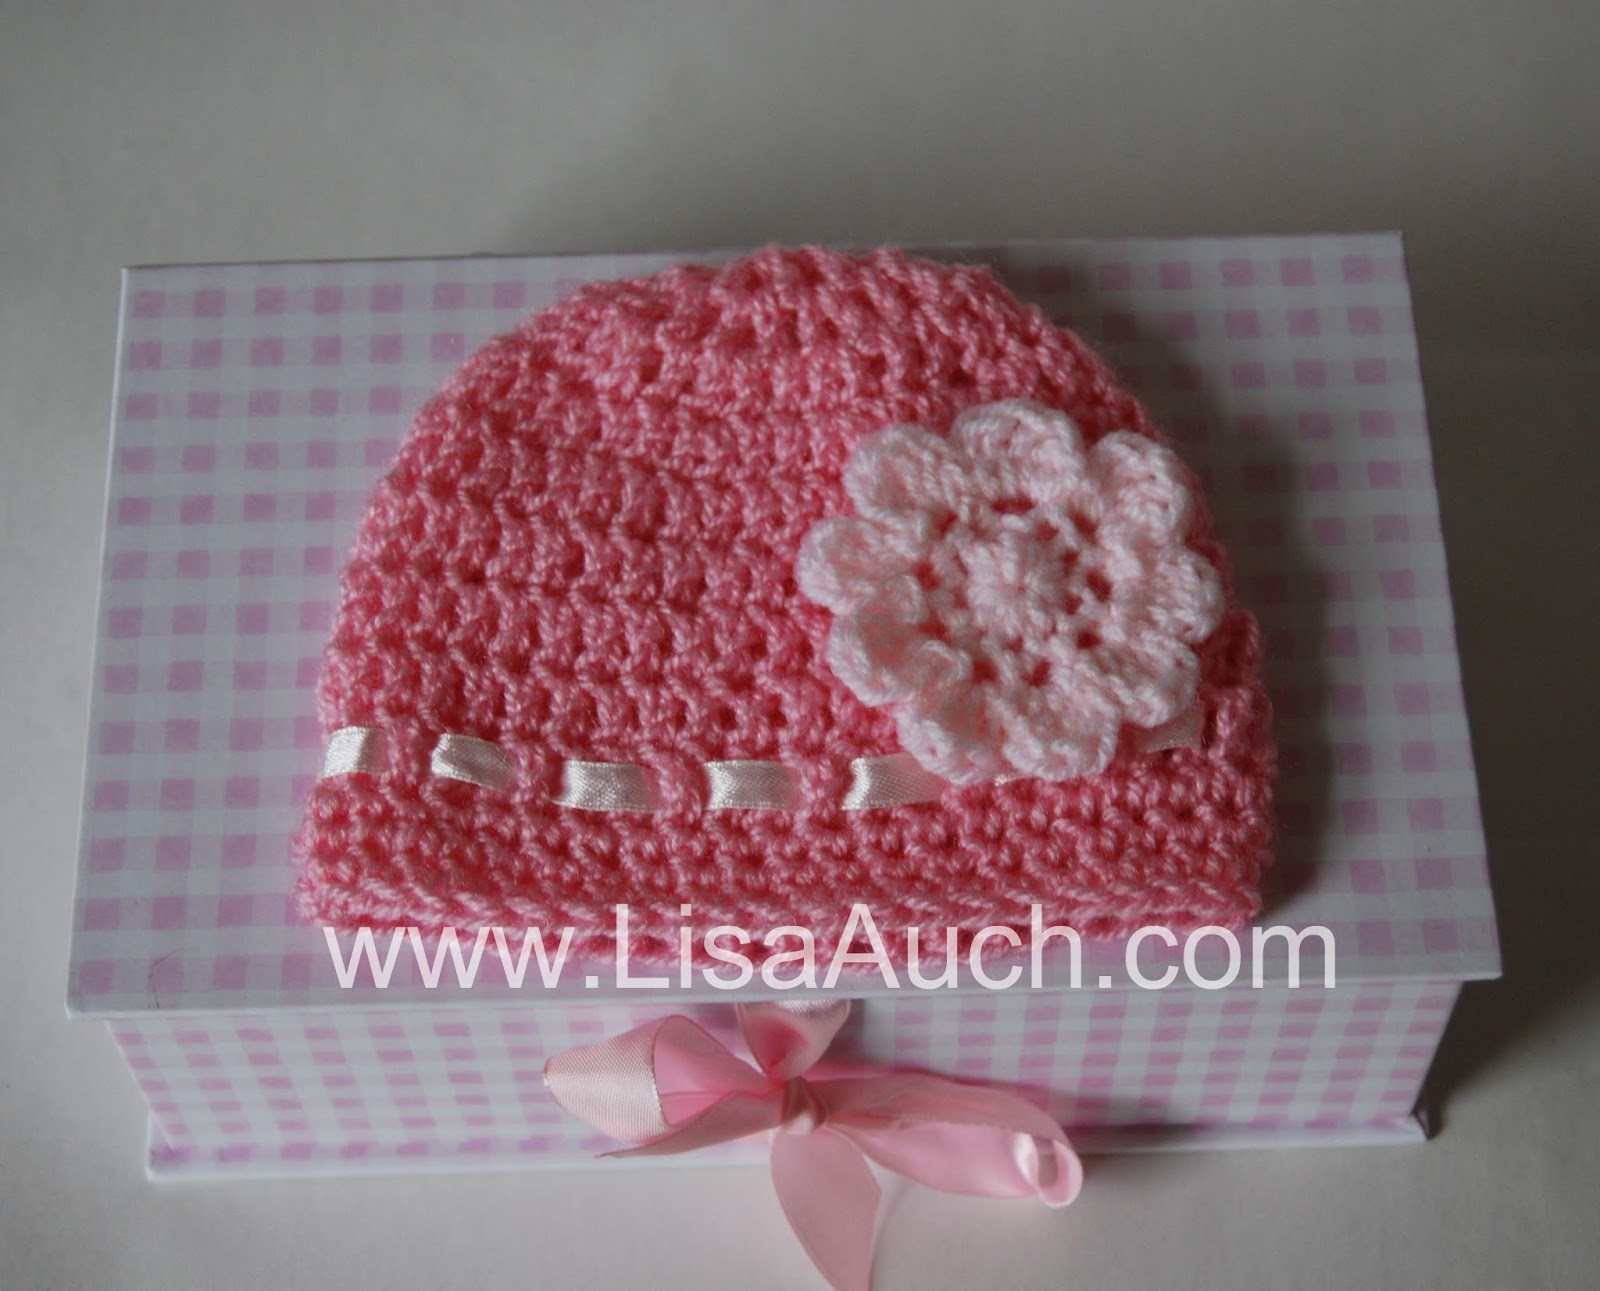 Best Of Easy Crochet Baby Hat Patterns for Beginners Crochet and Free Baby Crochet Patterns for Beginners Of Lovely 42 Models Free Baby Crochet Patterns for Beginners